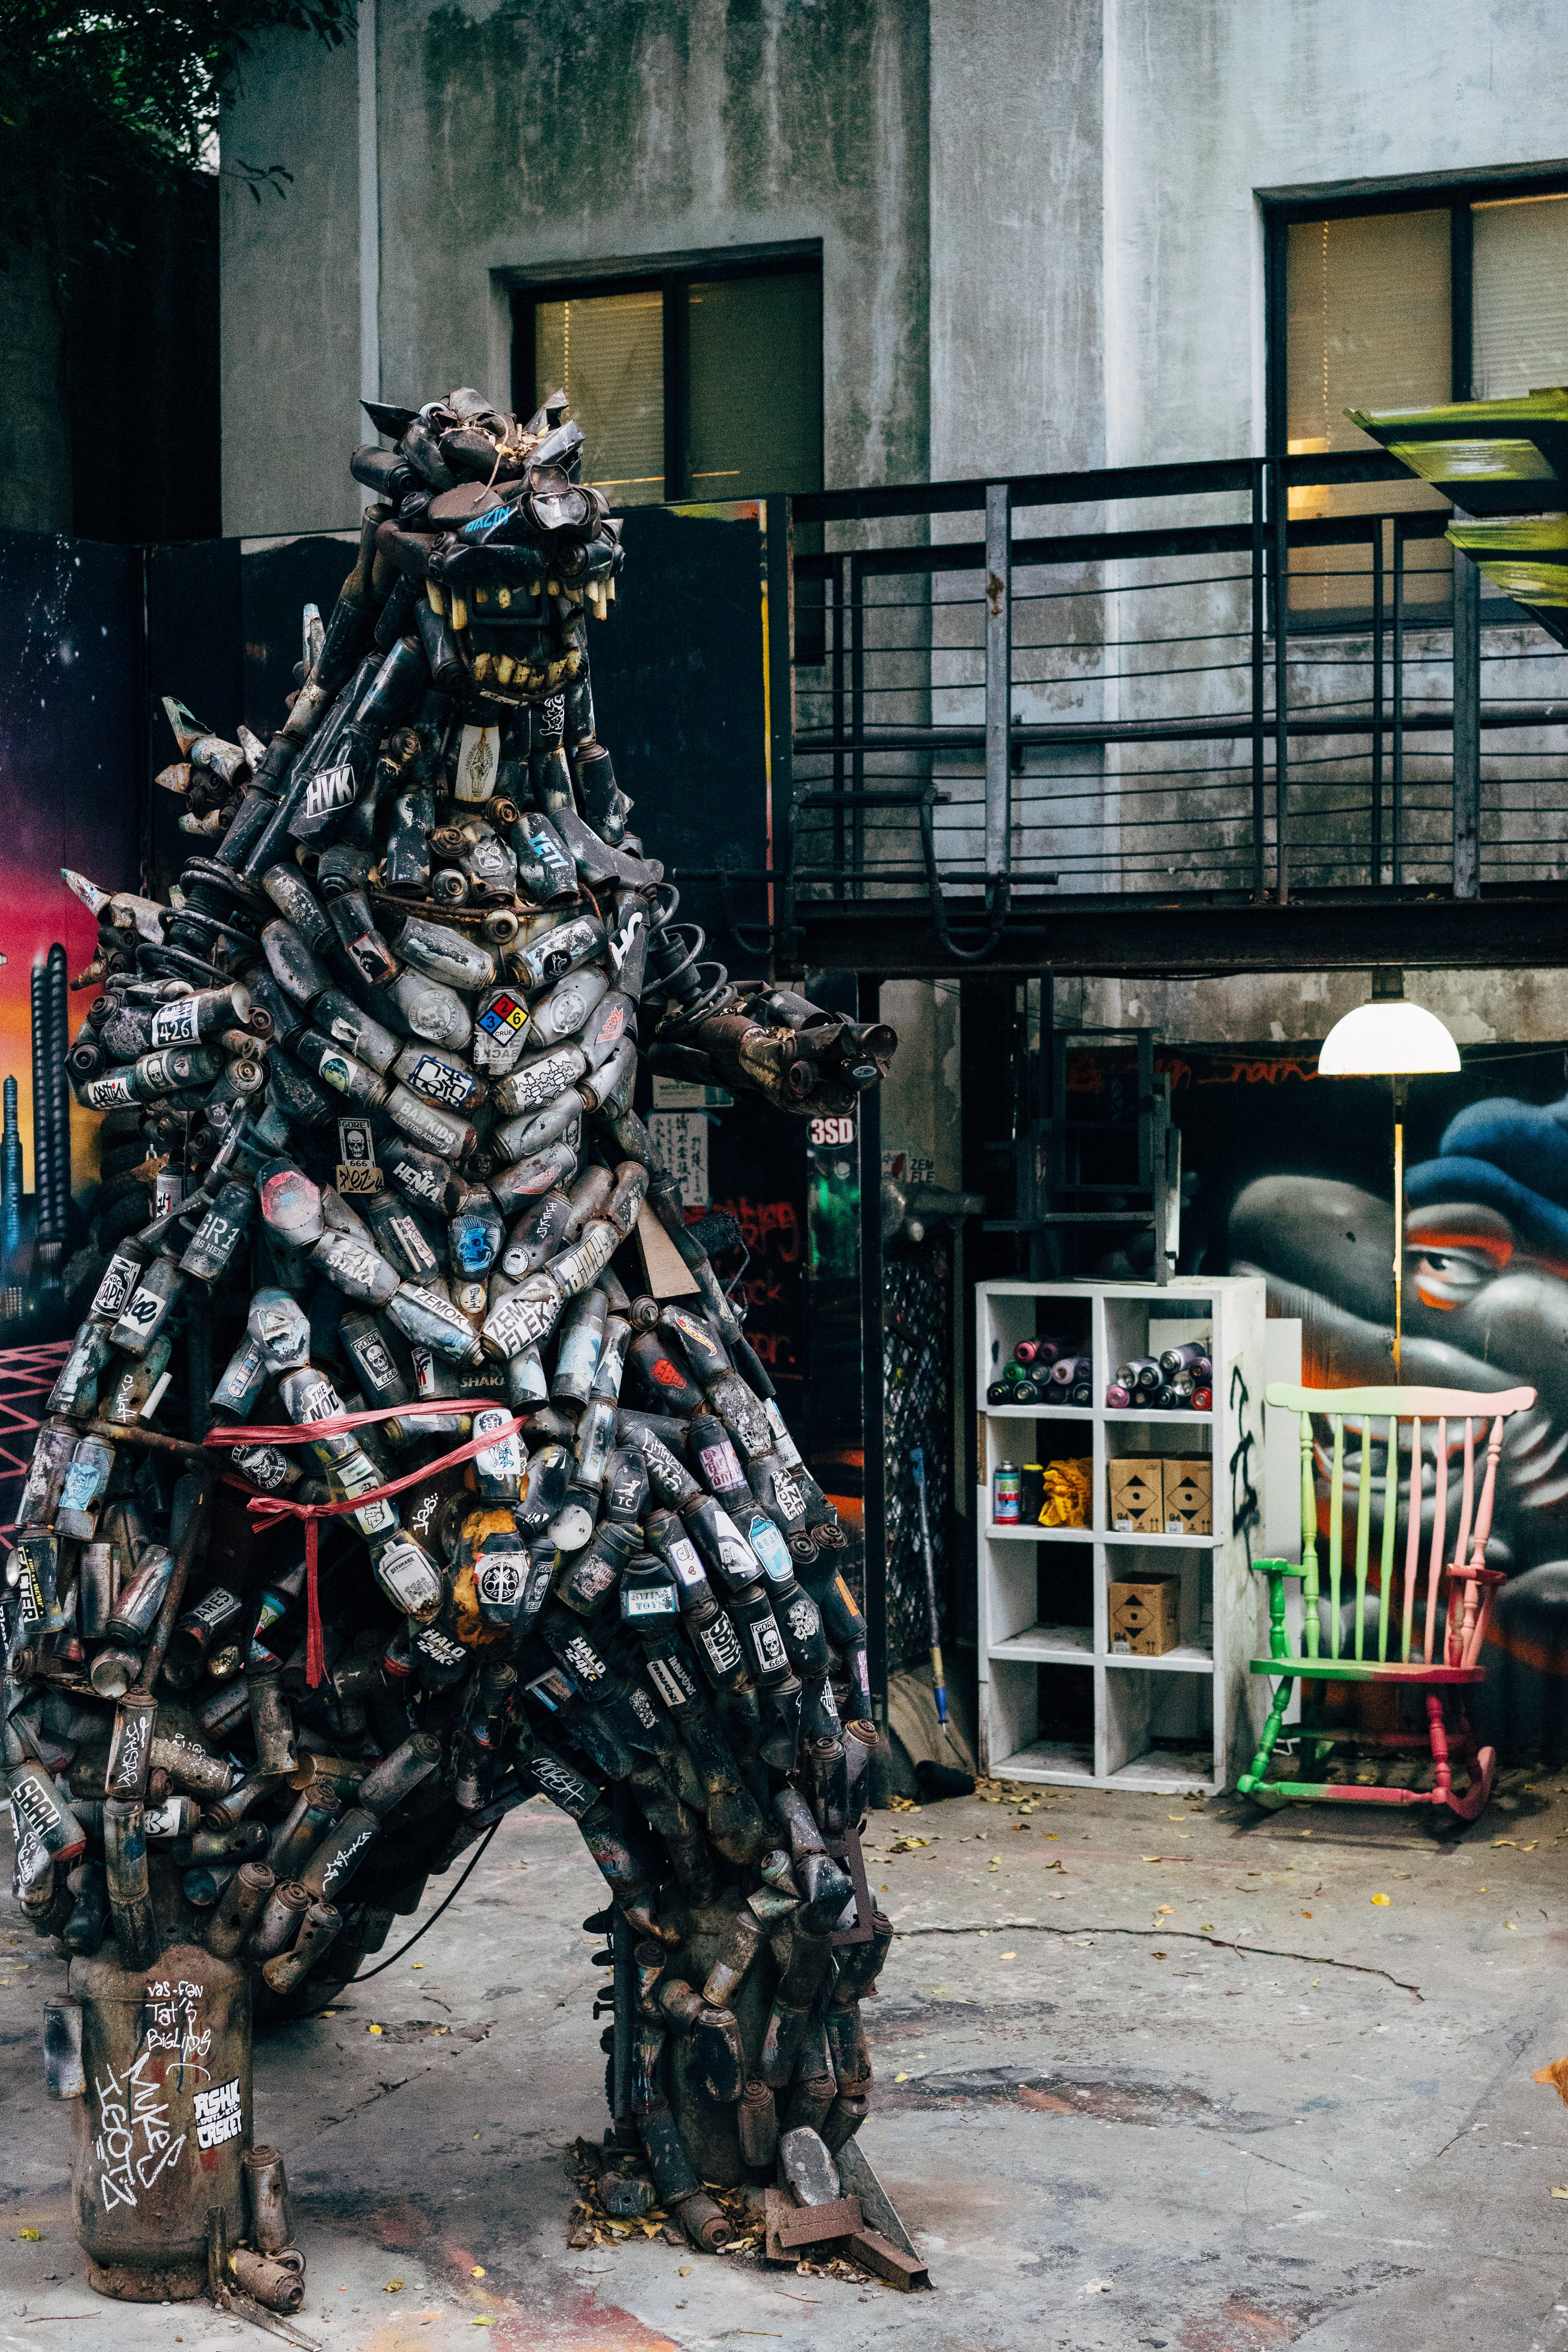 A Godzilla sculpture made of… I'm going to say, beer cans.